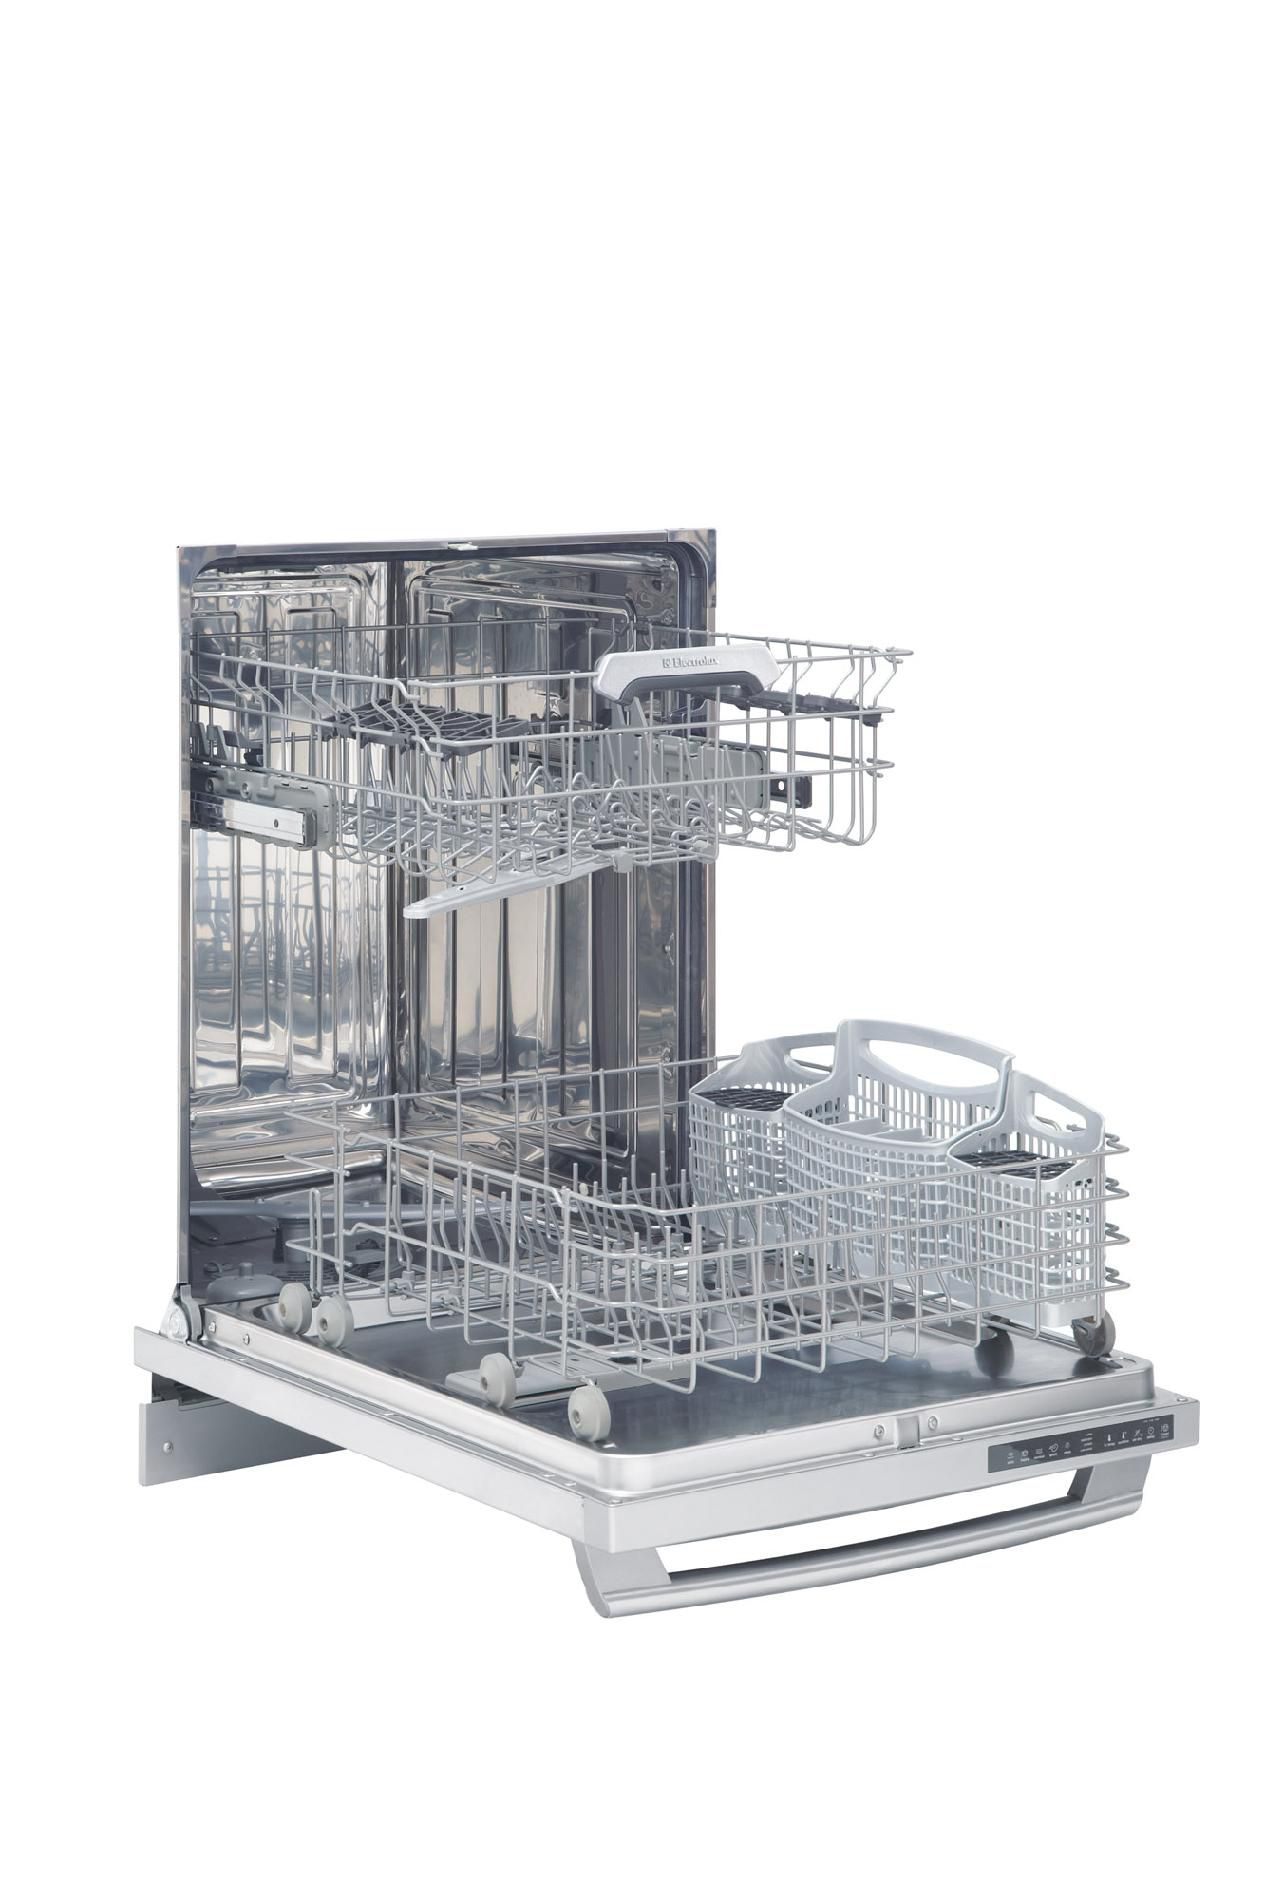 "Electrolux 24"" Built-In Dishwasher - Stainless Steel"